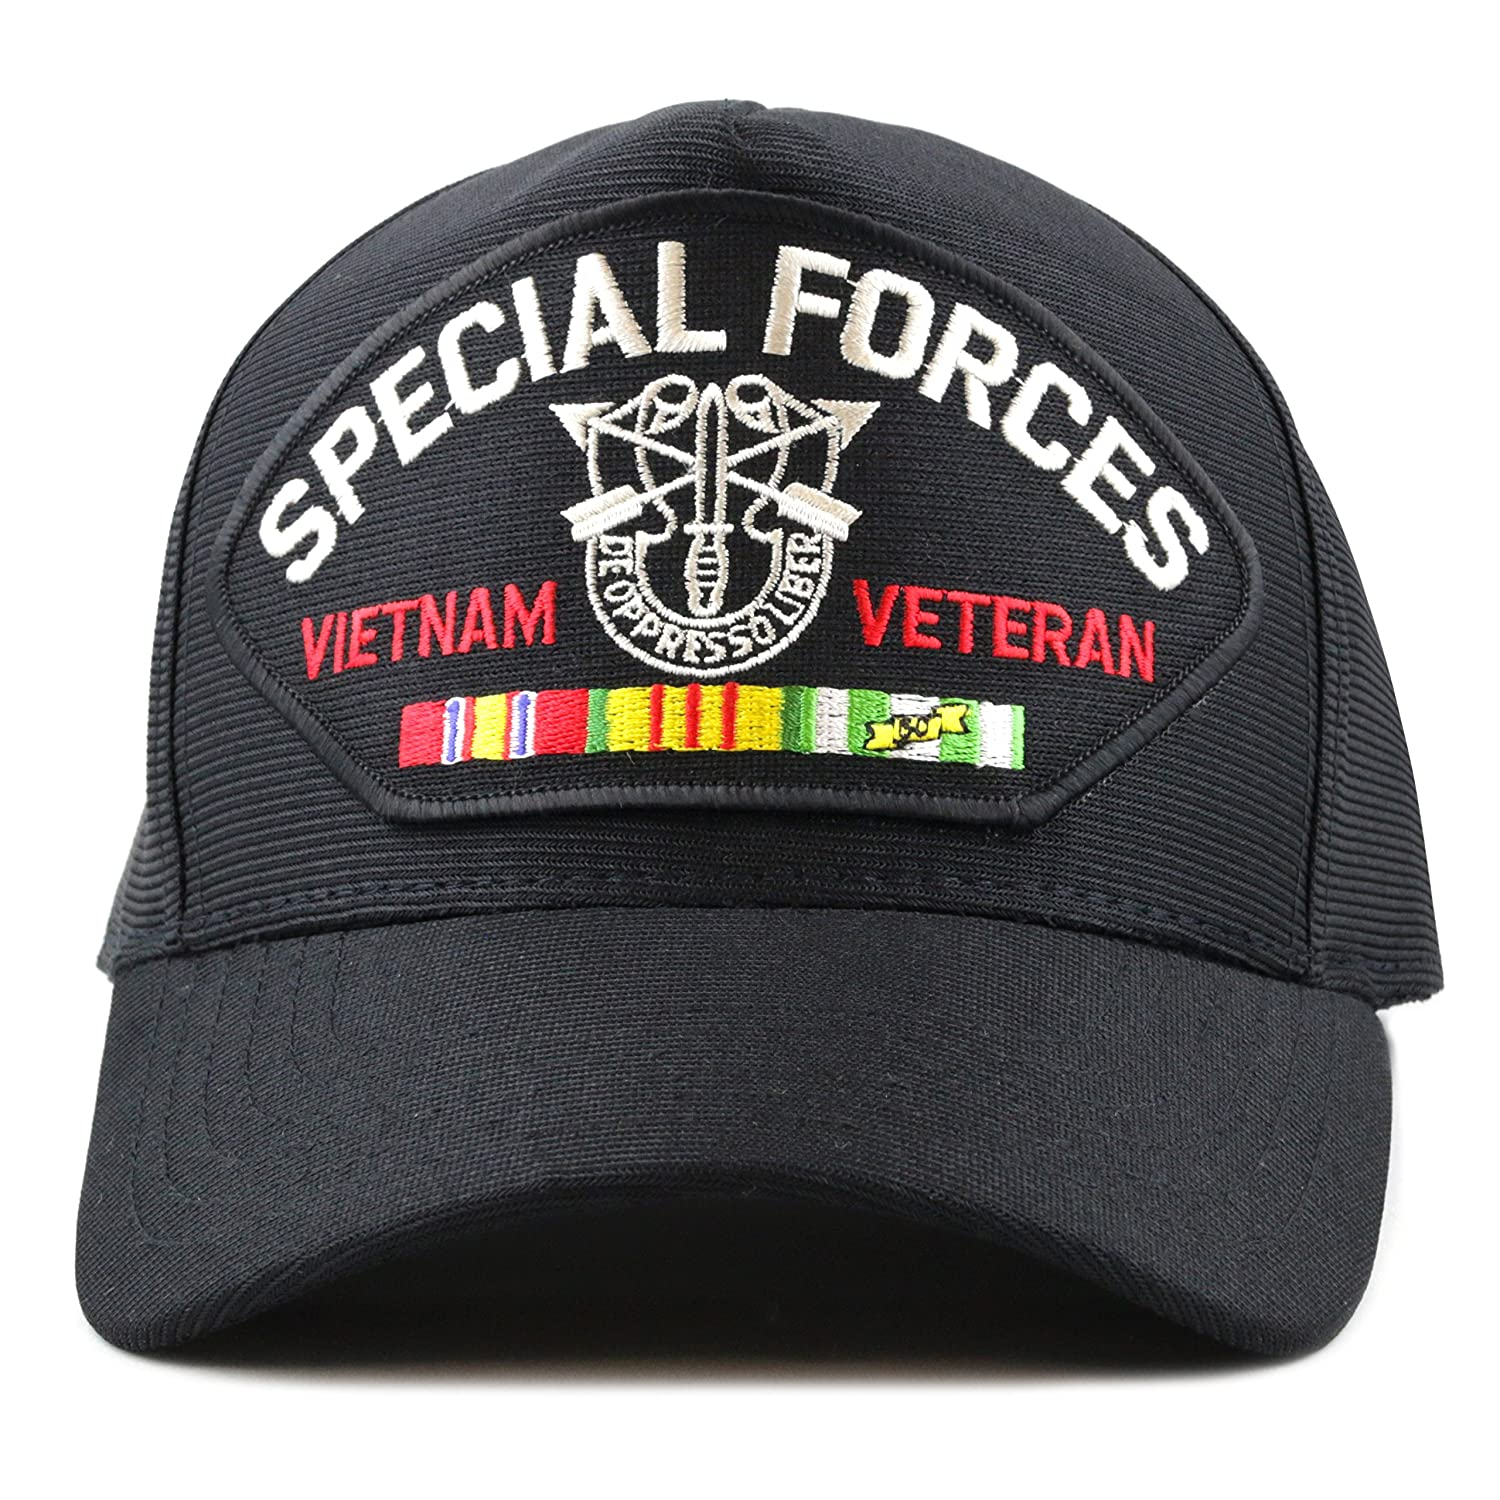 130a3a42b344b THE HAT DEPOT Made in USA Special Forces Vietnam Veteran Baseball Cap at  Amazon Men s Clothing store